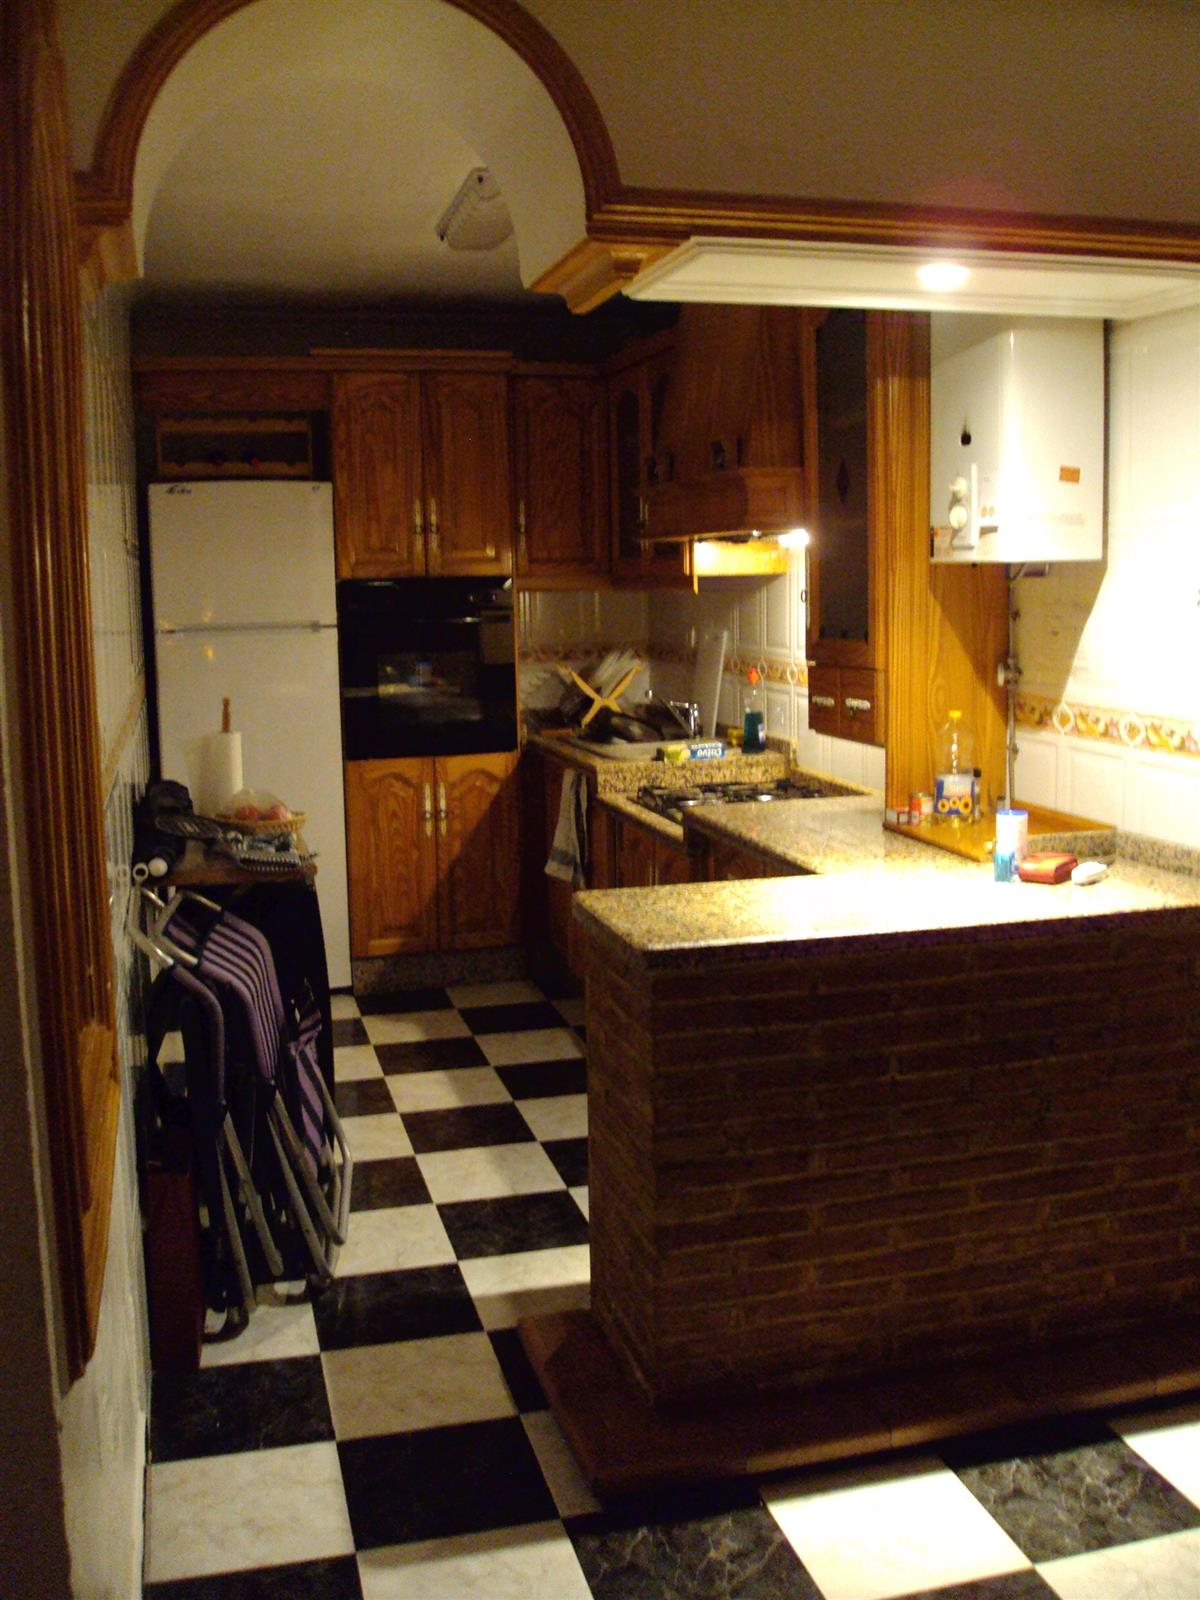 Main kitchen on ground floor, by the entrance.